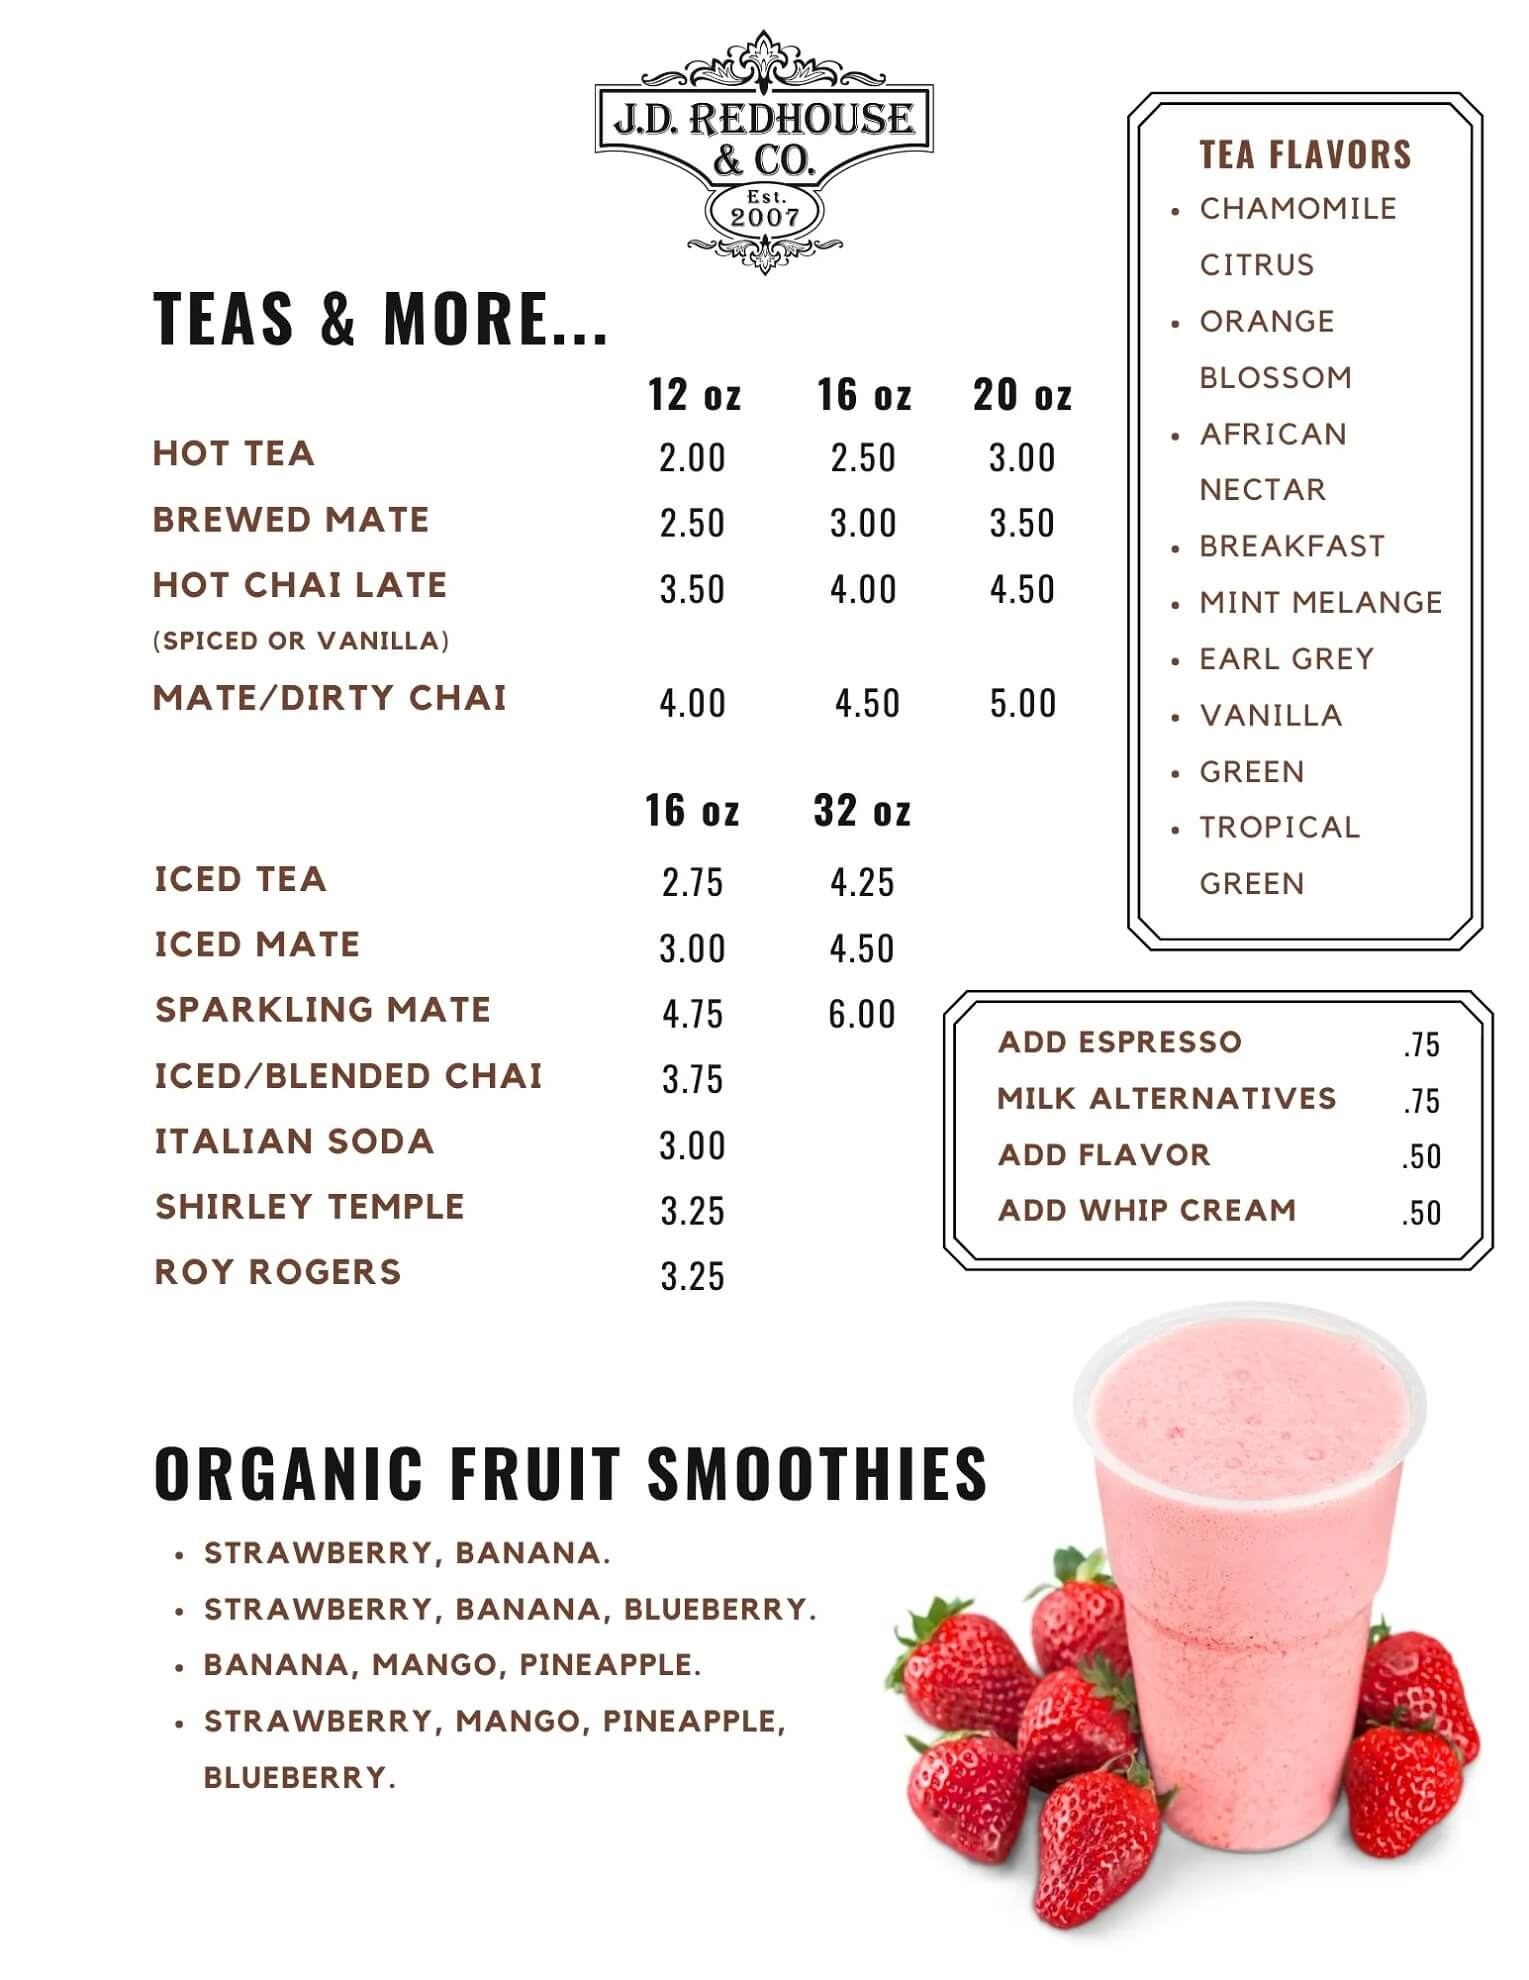 JD Redhouse Tea and Smoothie Menu - Willits California